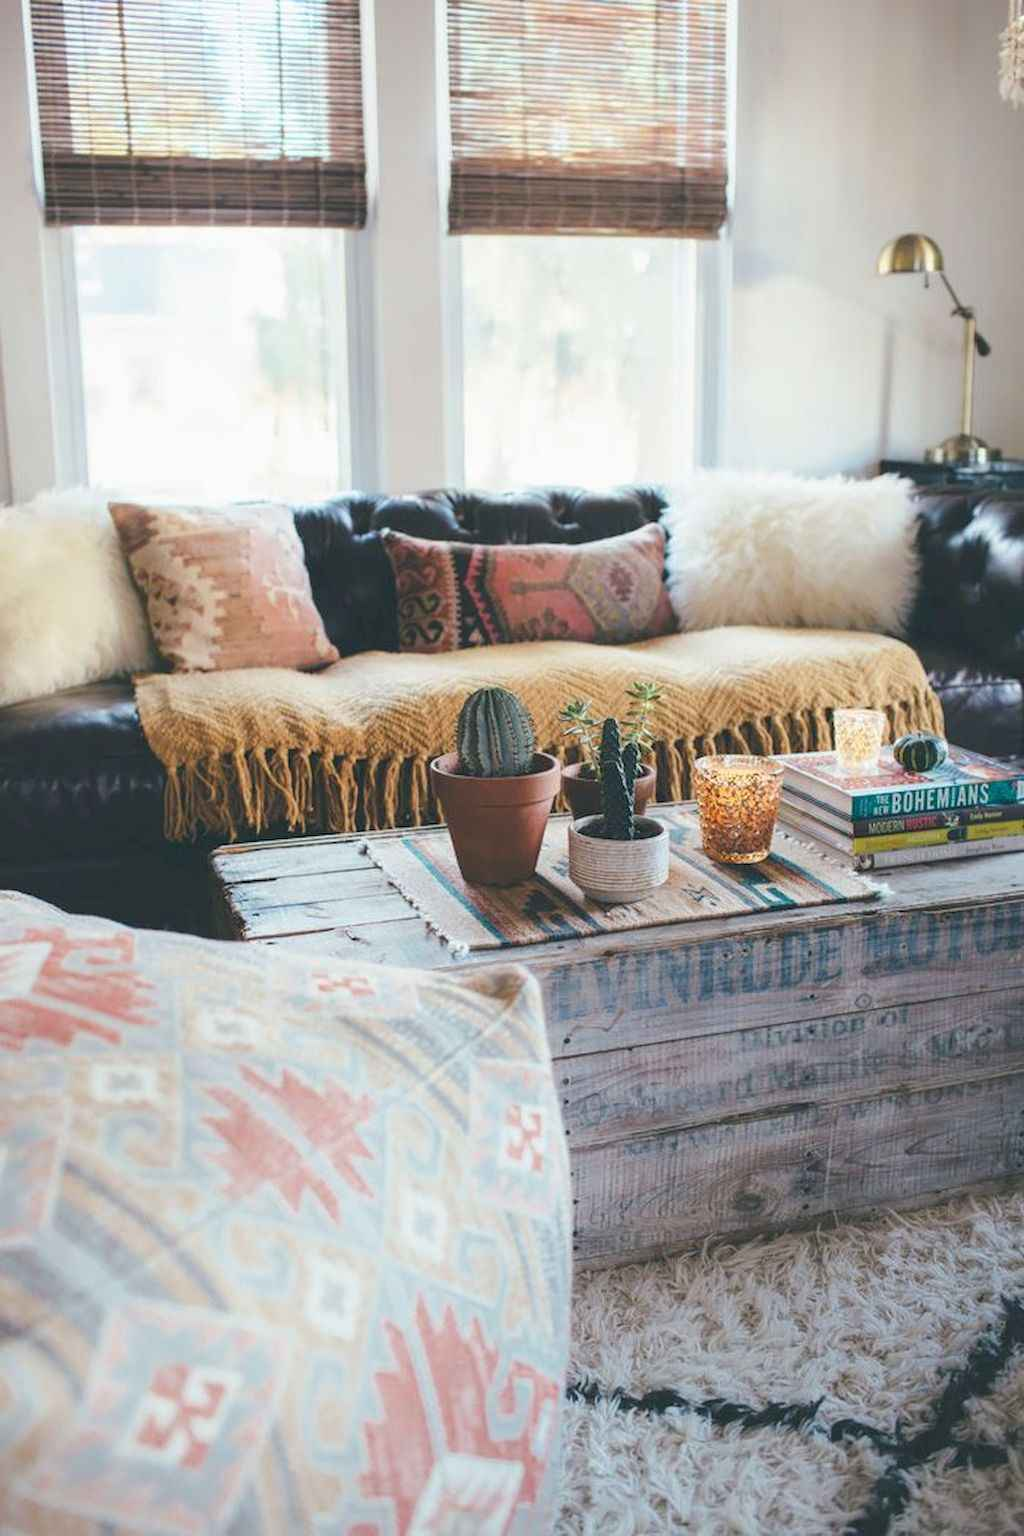 Cozy apartment decorating ideas on a budget (52)